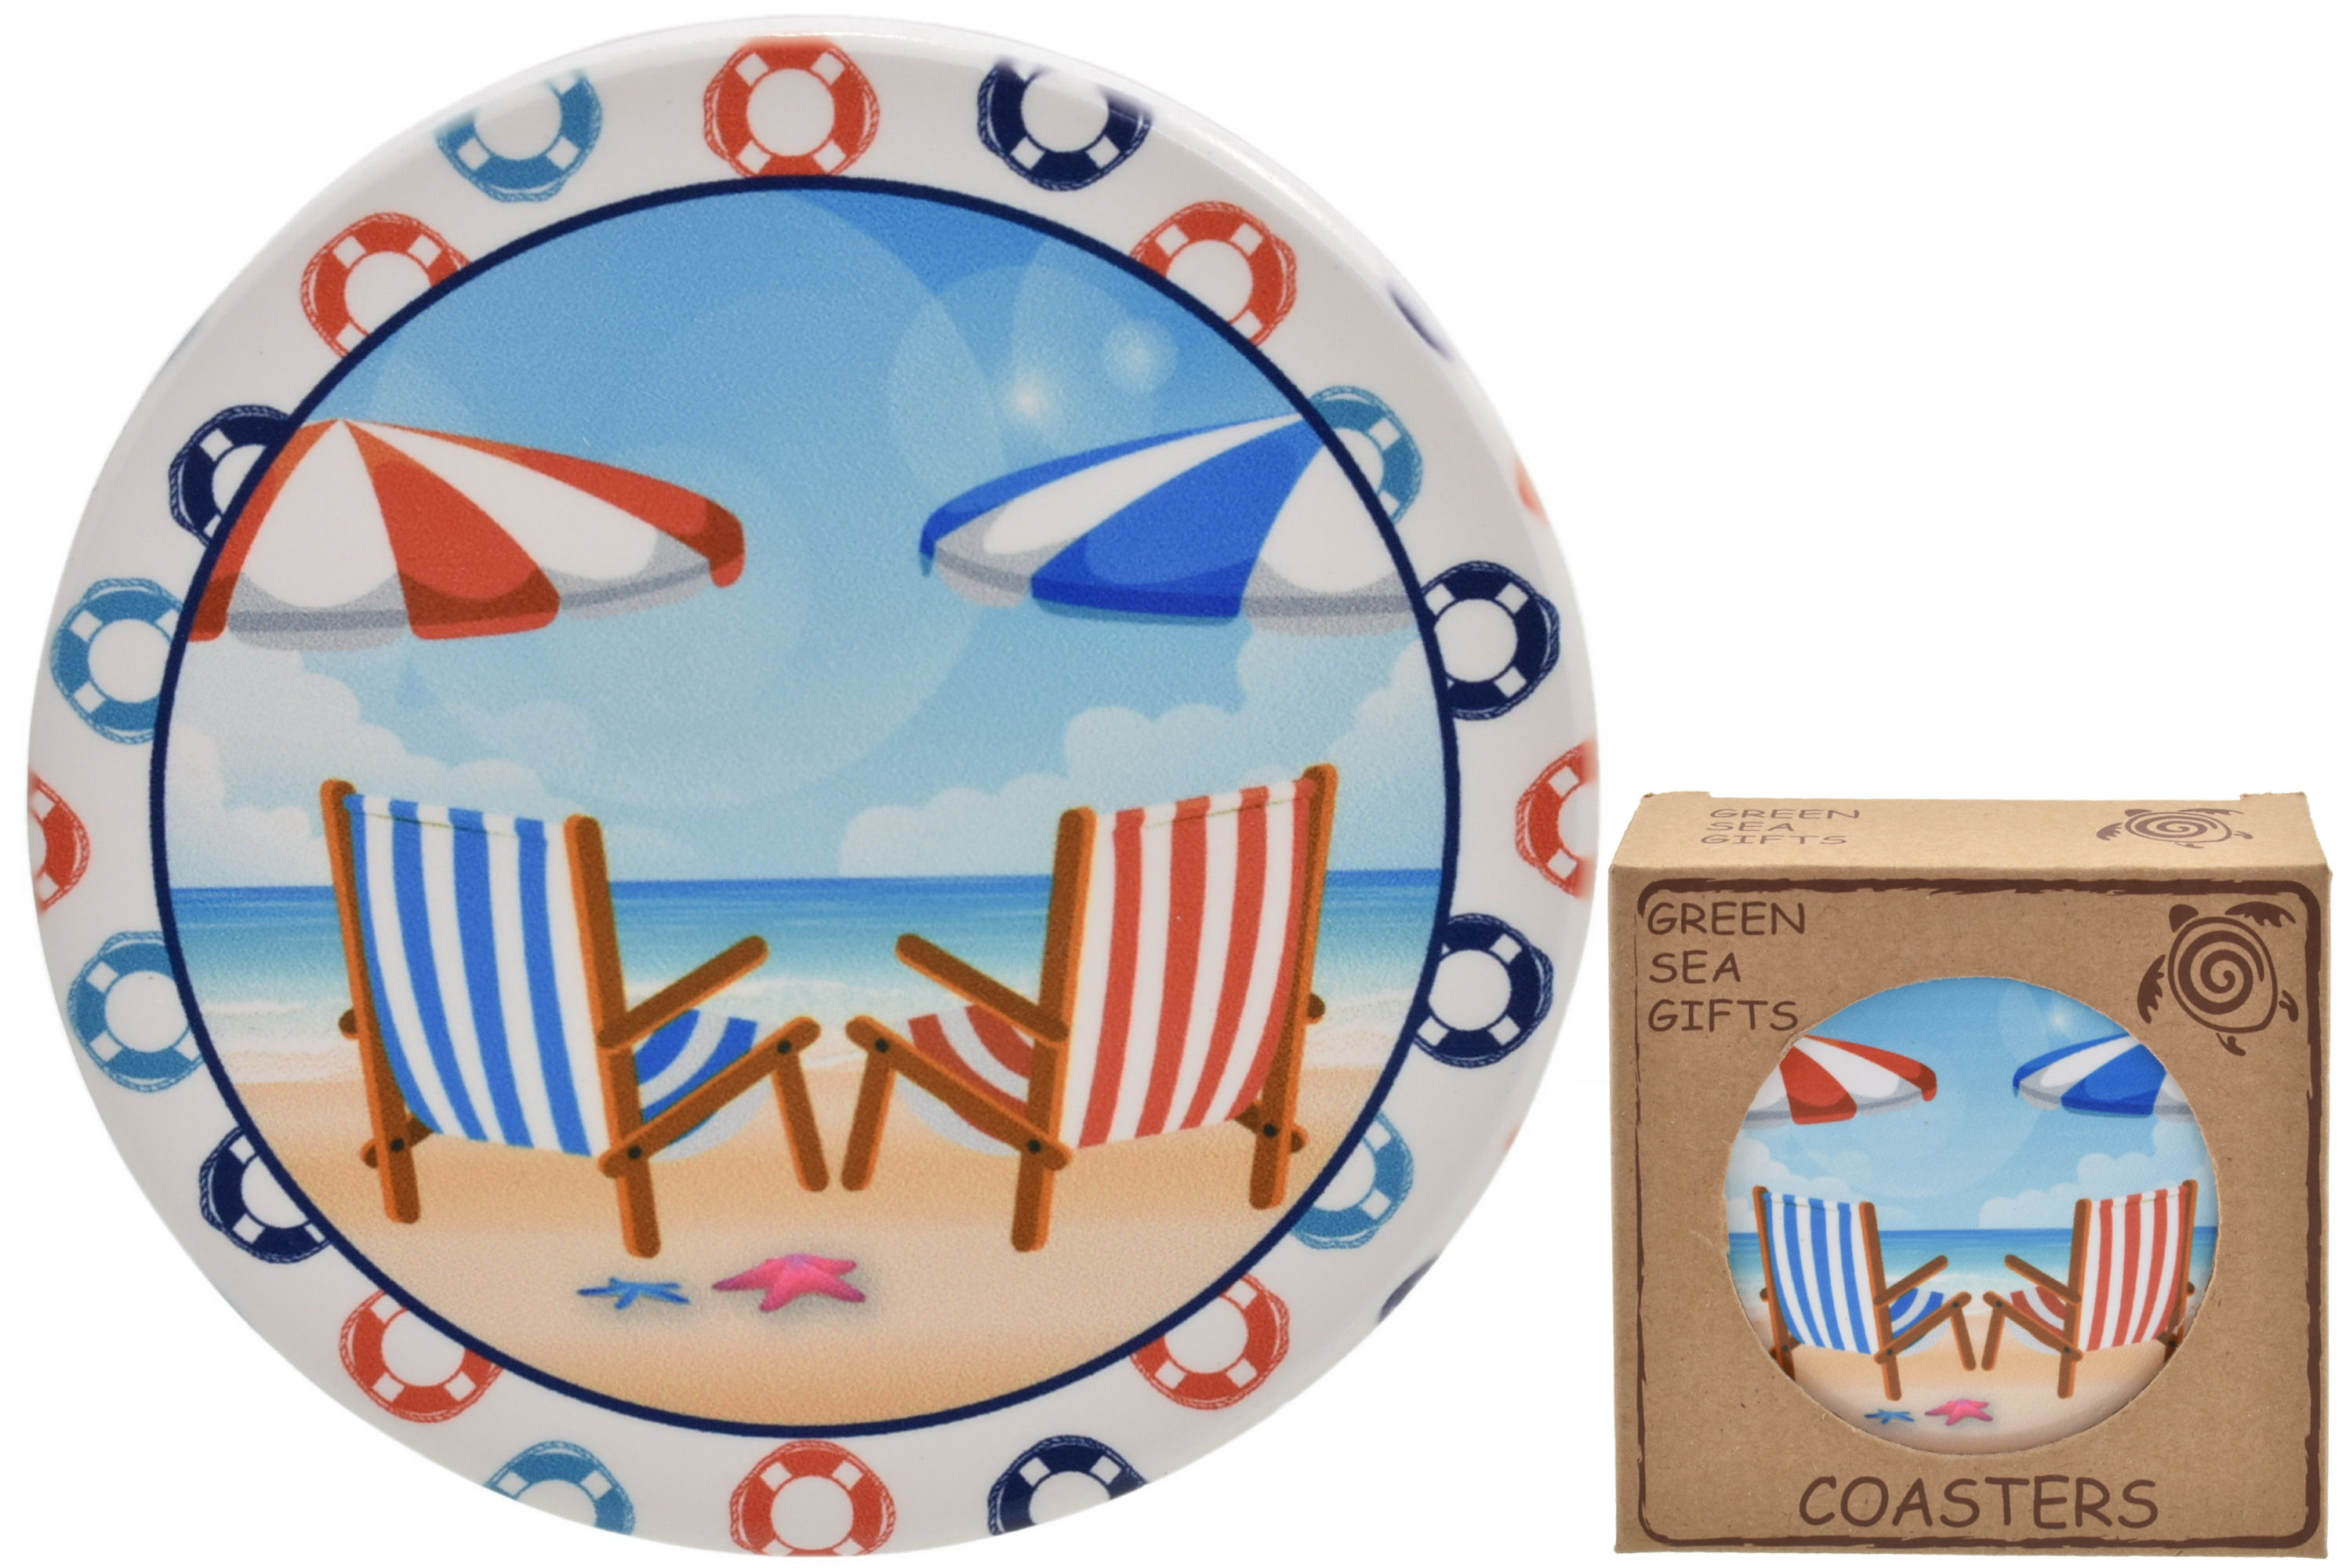 10cm Deck Chairs Design Coaster Set Of 4 In Gift Box